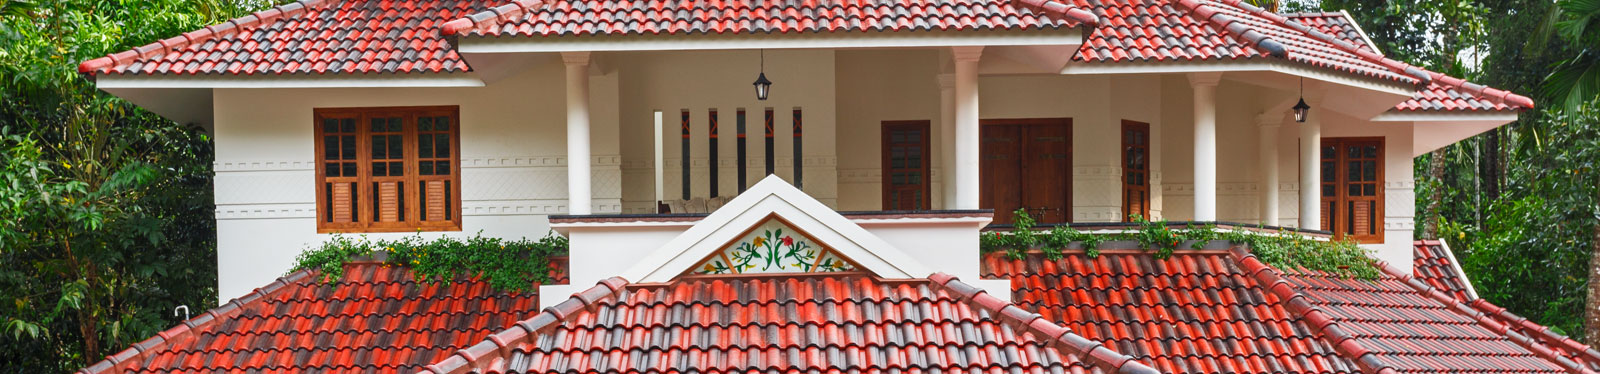 PIONNIER Roofing Solutions » ROOF TILES INDIA